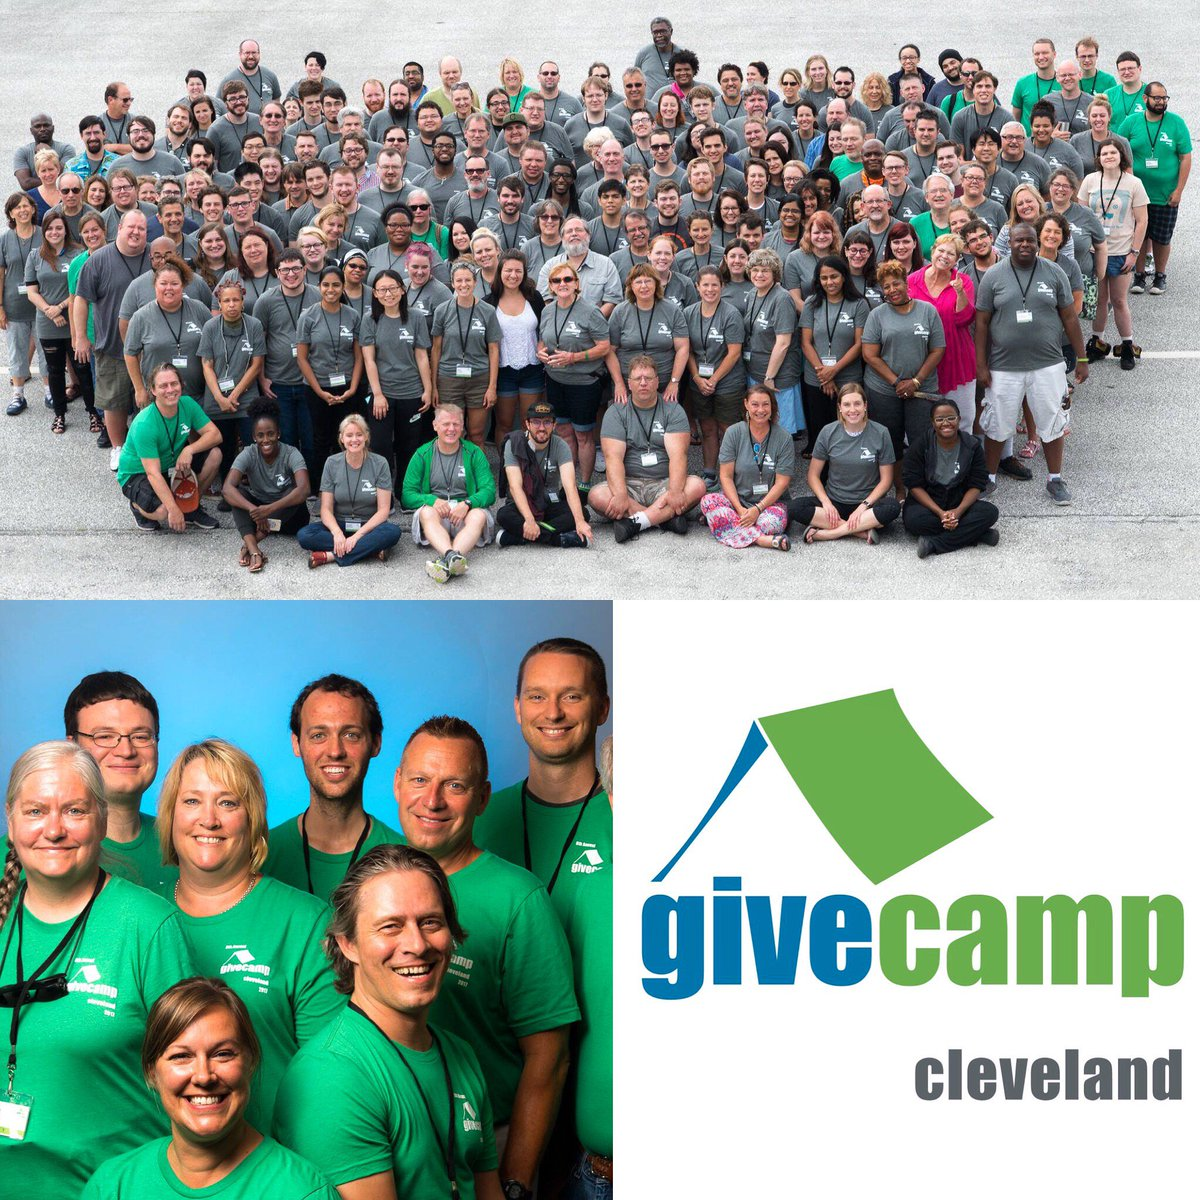 Members of our #Applications team, Ross (bottom-left: middle back) &amp; Sean (top: middle front) had a great weekend at @clegivecamp! #clegc<br>http://pic.twitter.com/4qNyH0Ej8r